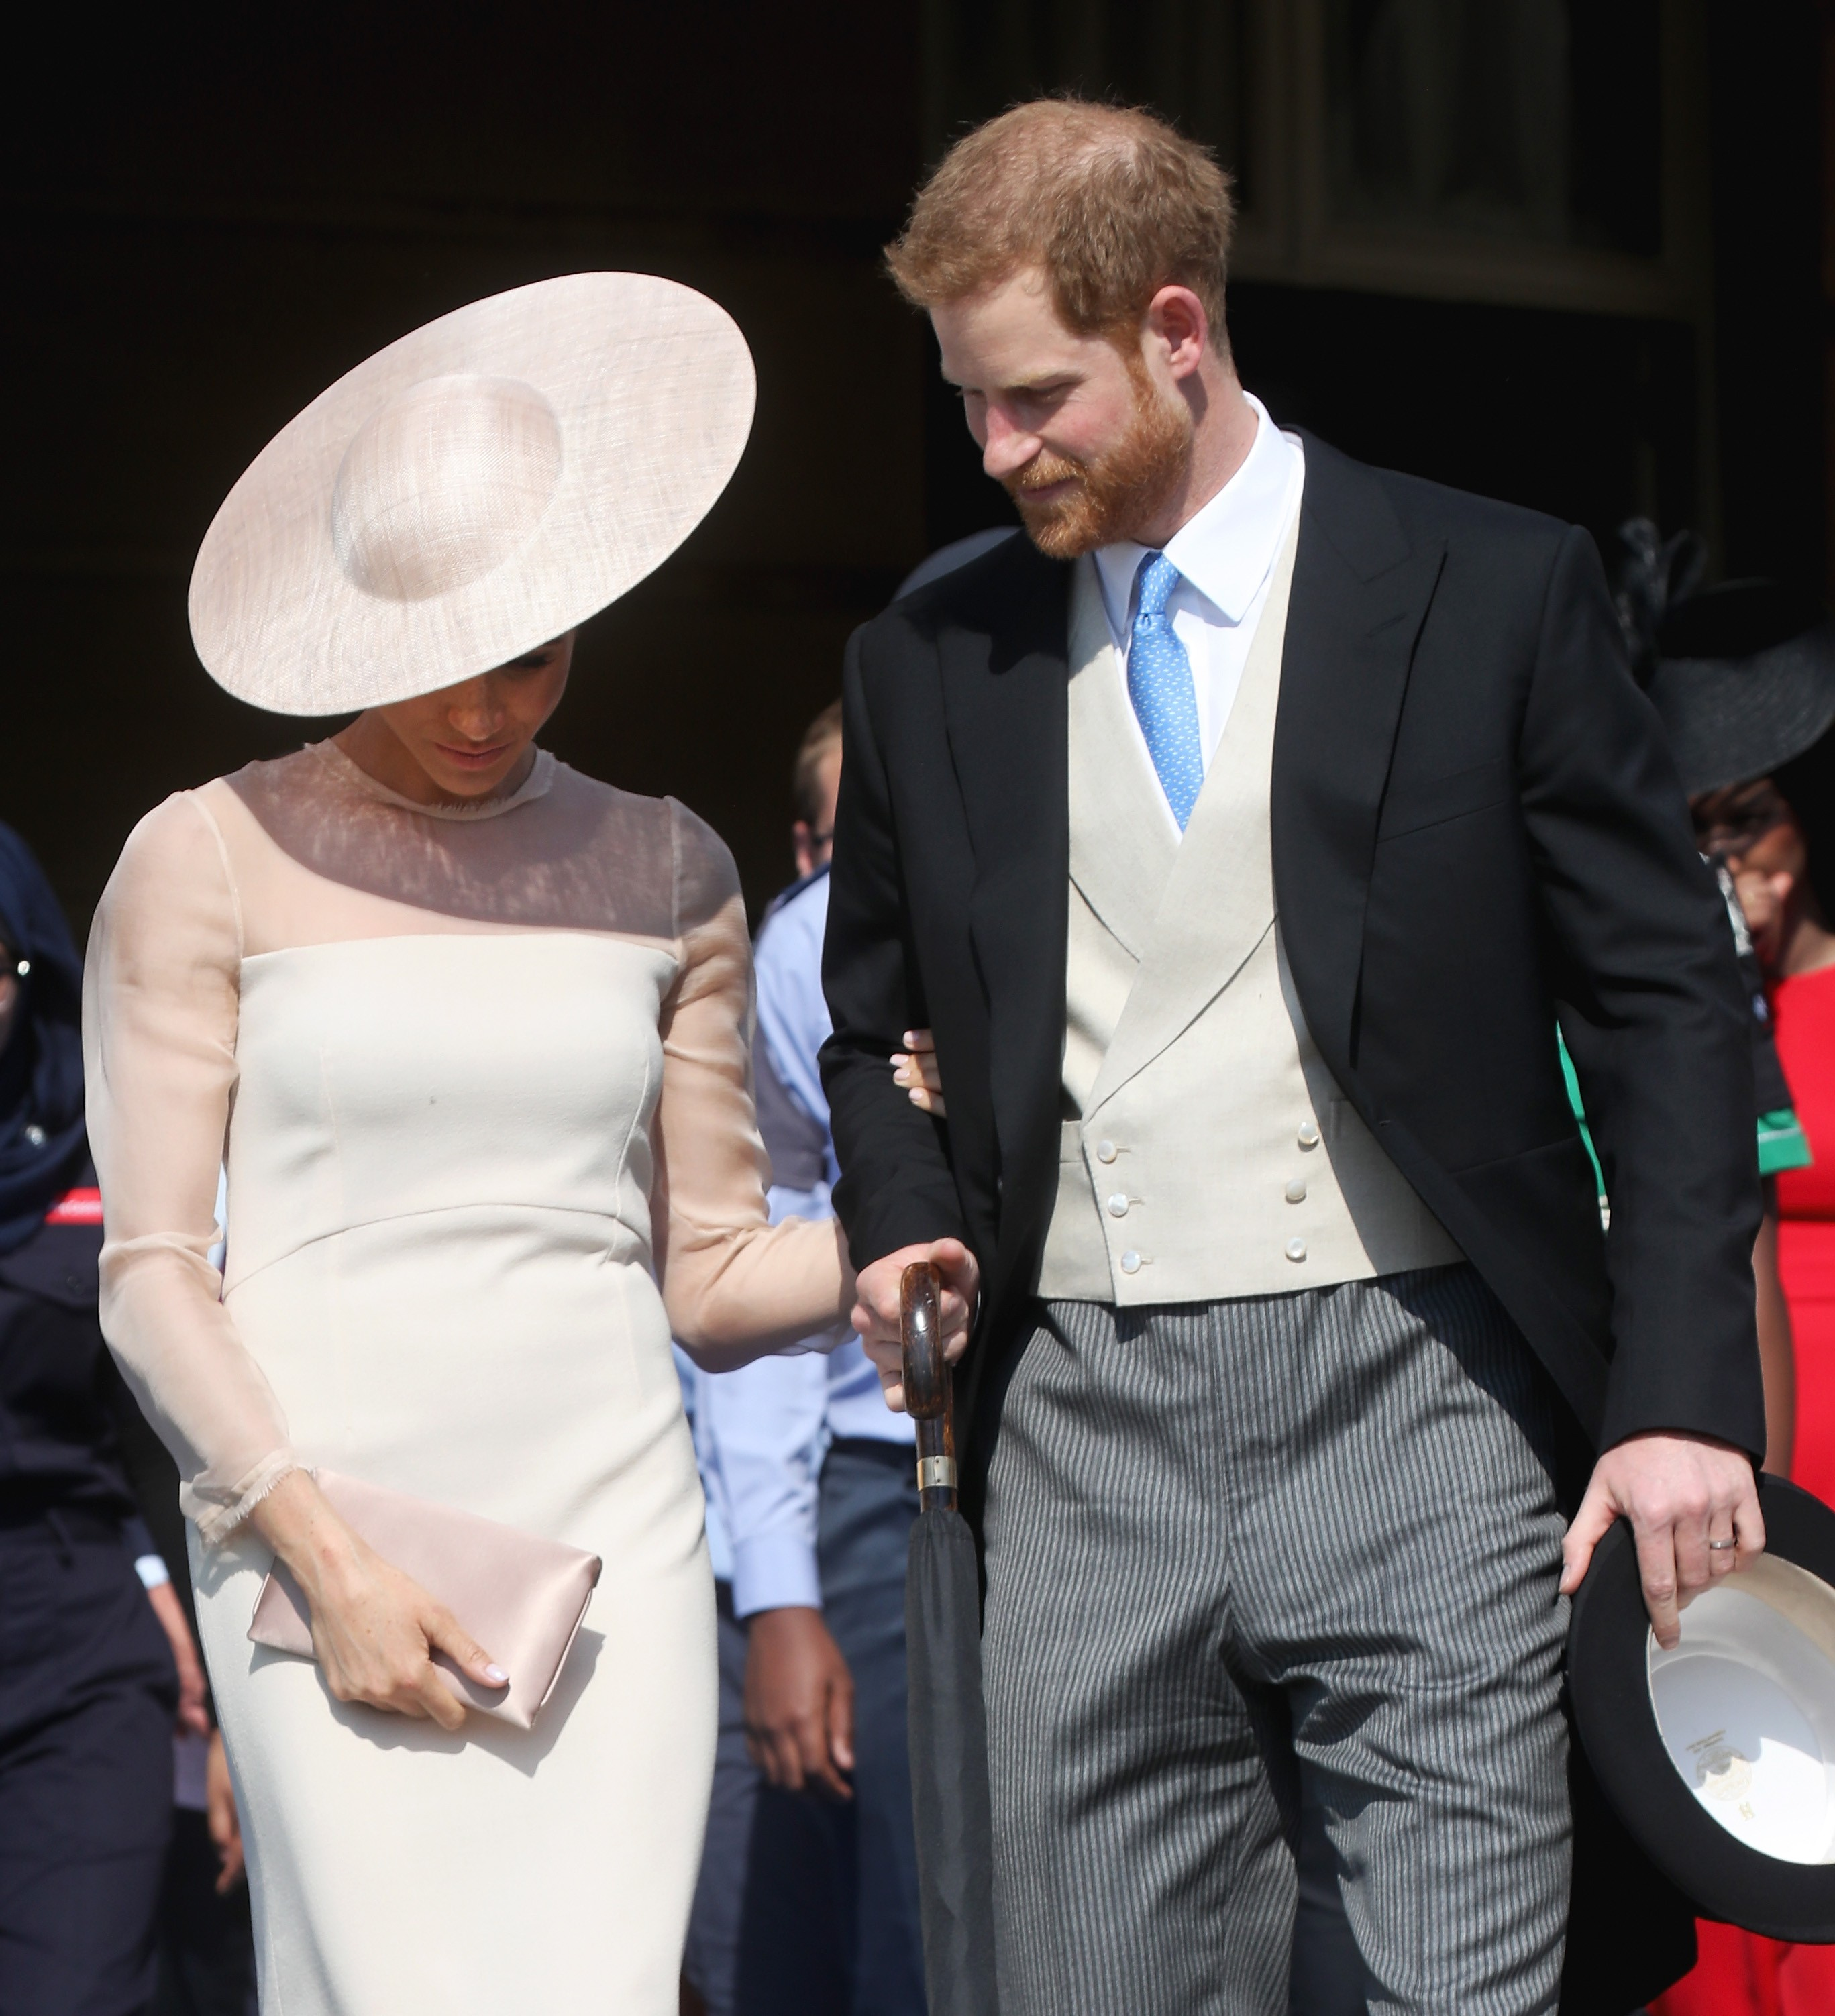 Meghan Markle e Harry, duquesa e duque de Sussex (Foto: Chris Jackson/Getty Images)